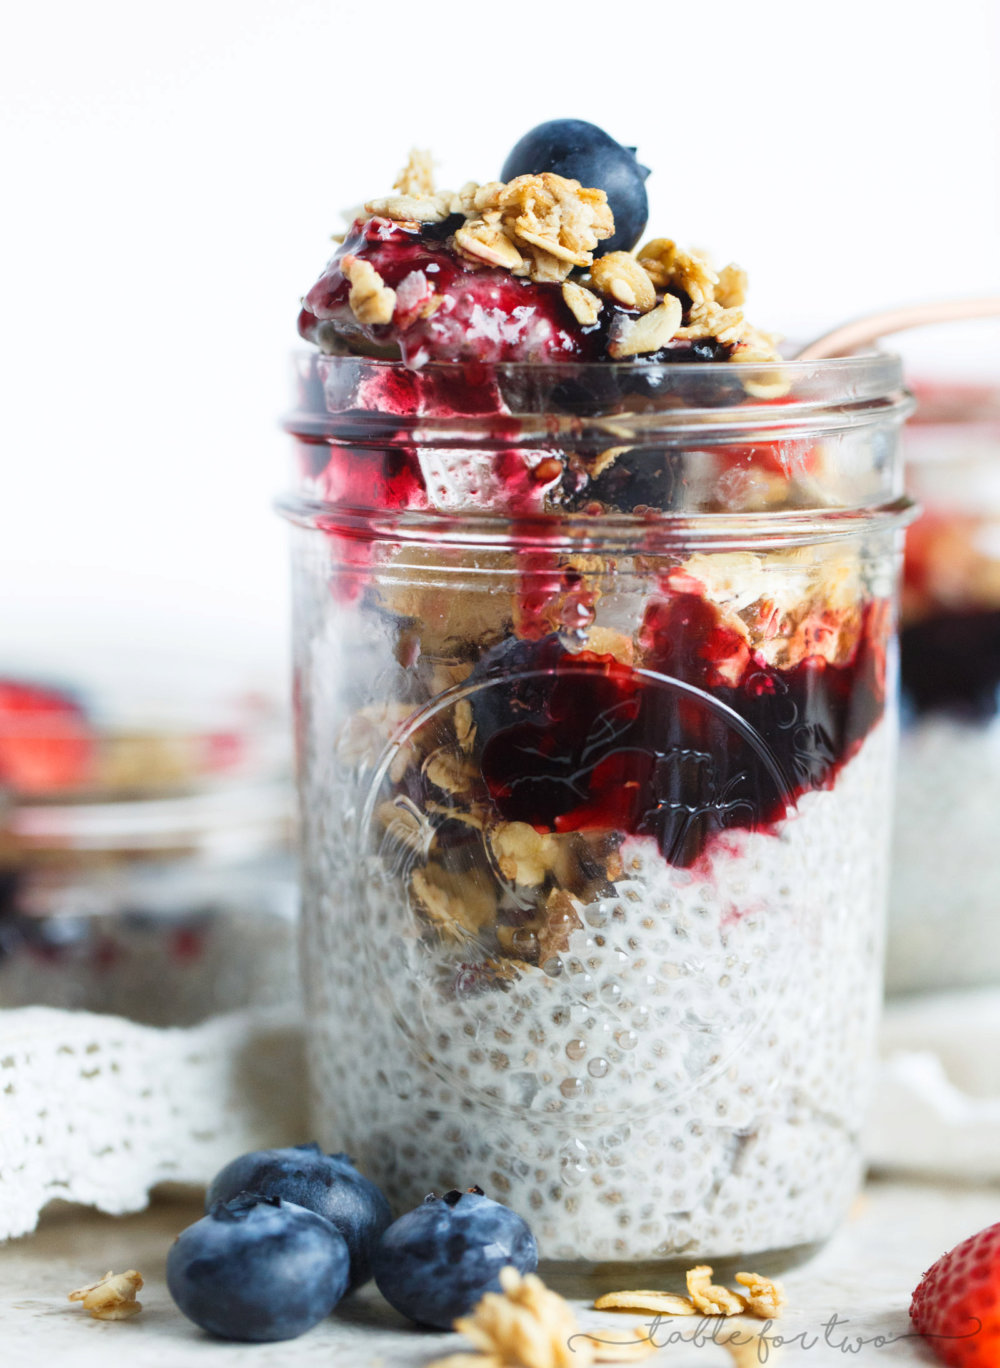 Coconut Chia Seed Pudding with Berries and Granola